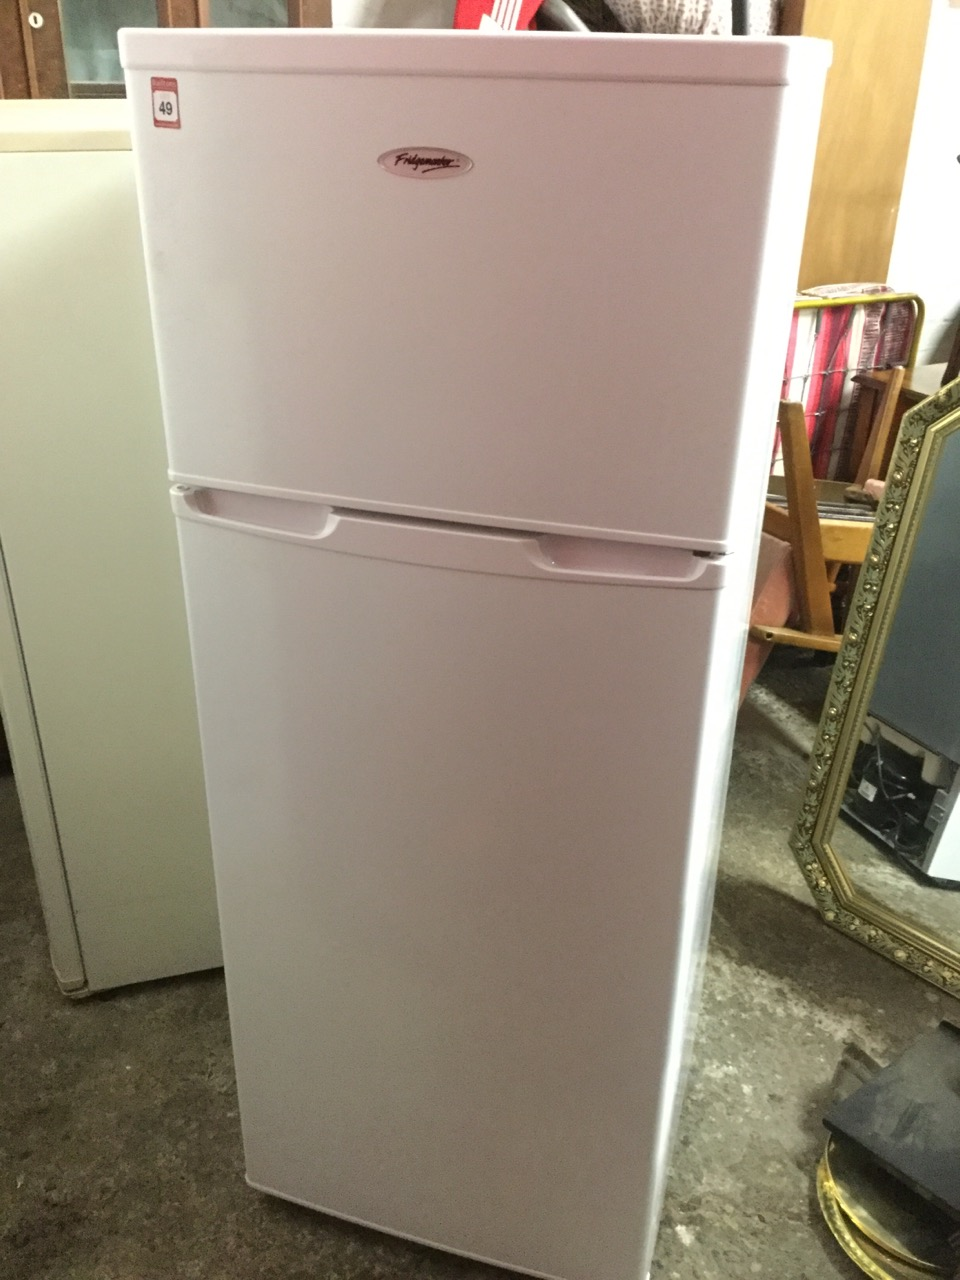 Lot 49 - A square Fridgemaster fridge freezer with two doors. (22in x 22in x 56.75in)